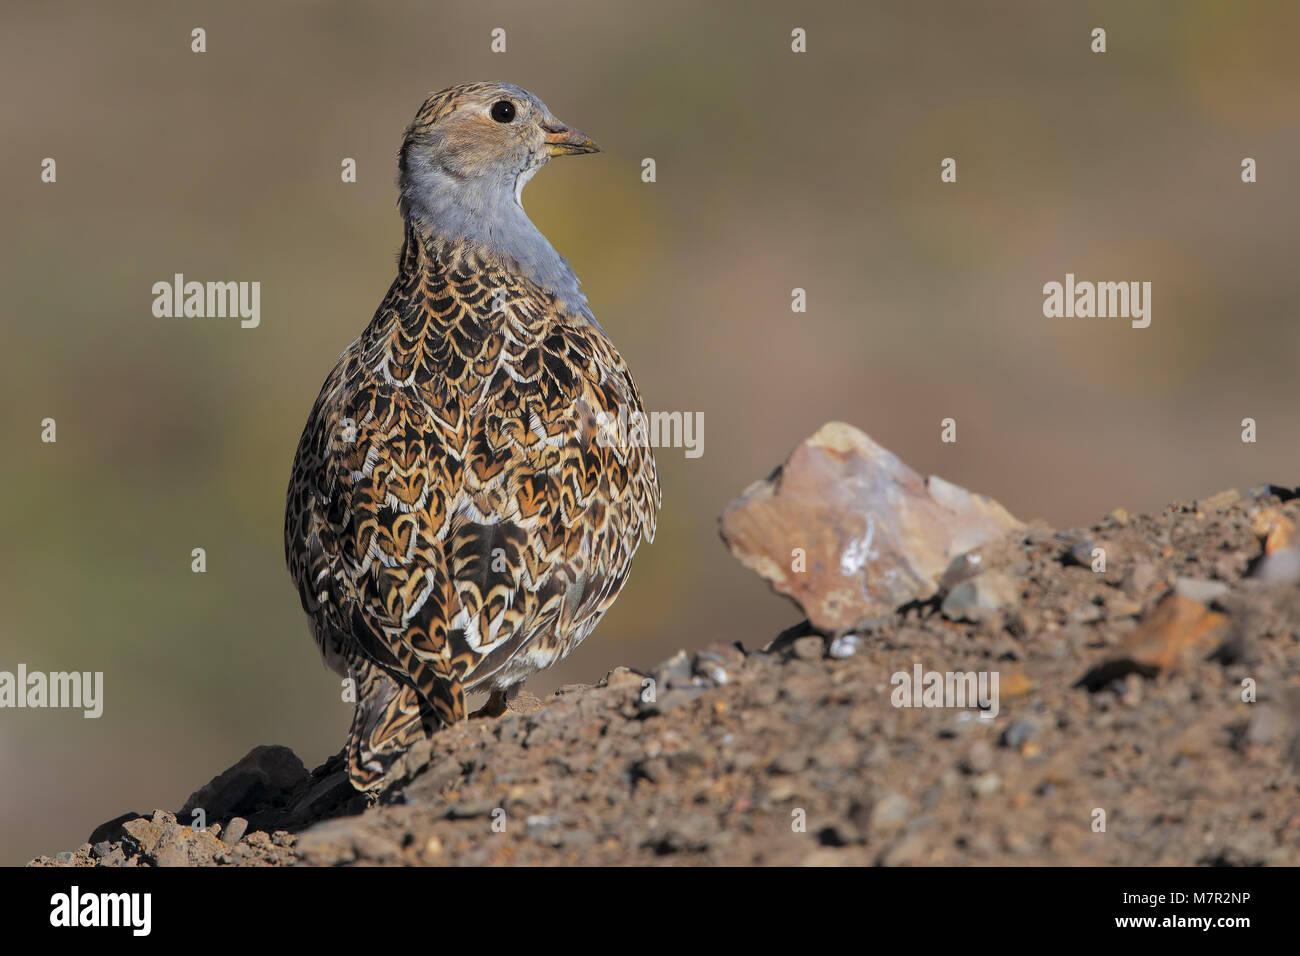 Grey-breasted Seedsnipe - Stock Image